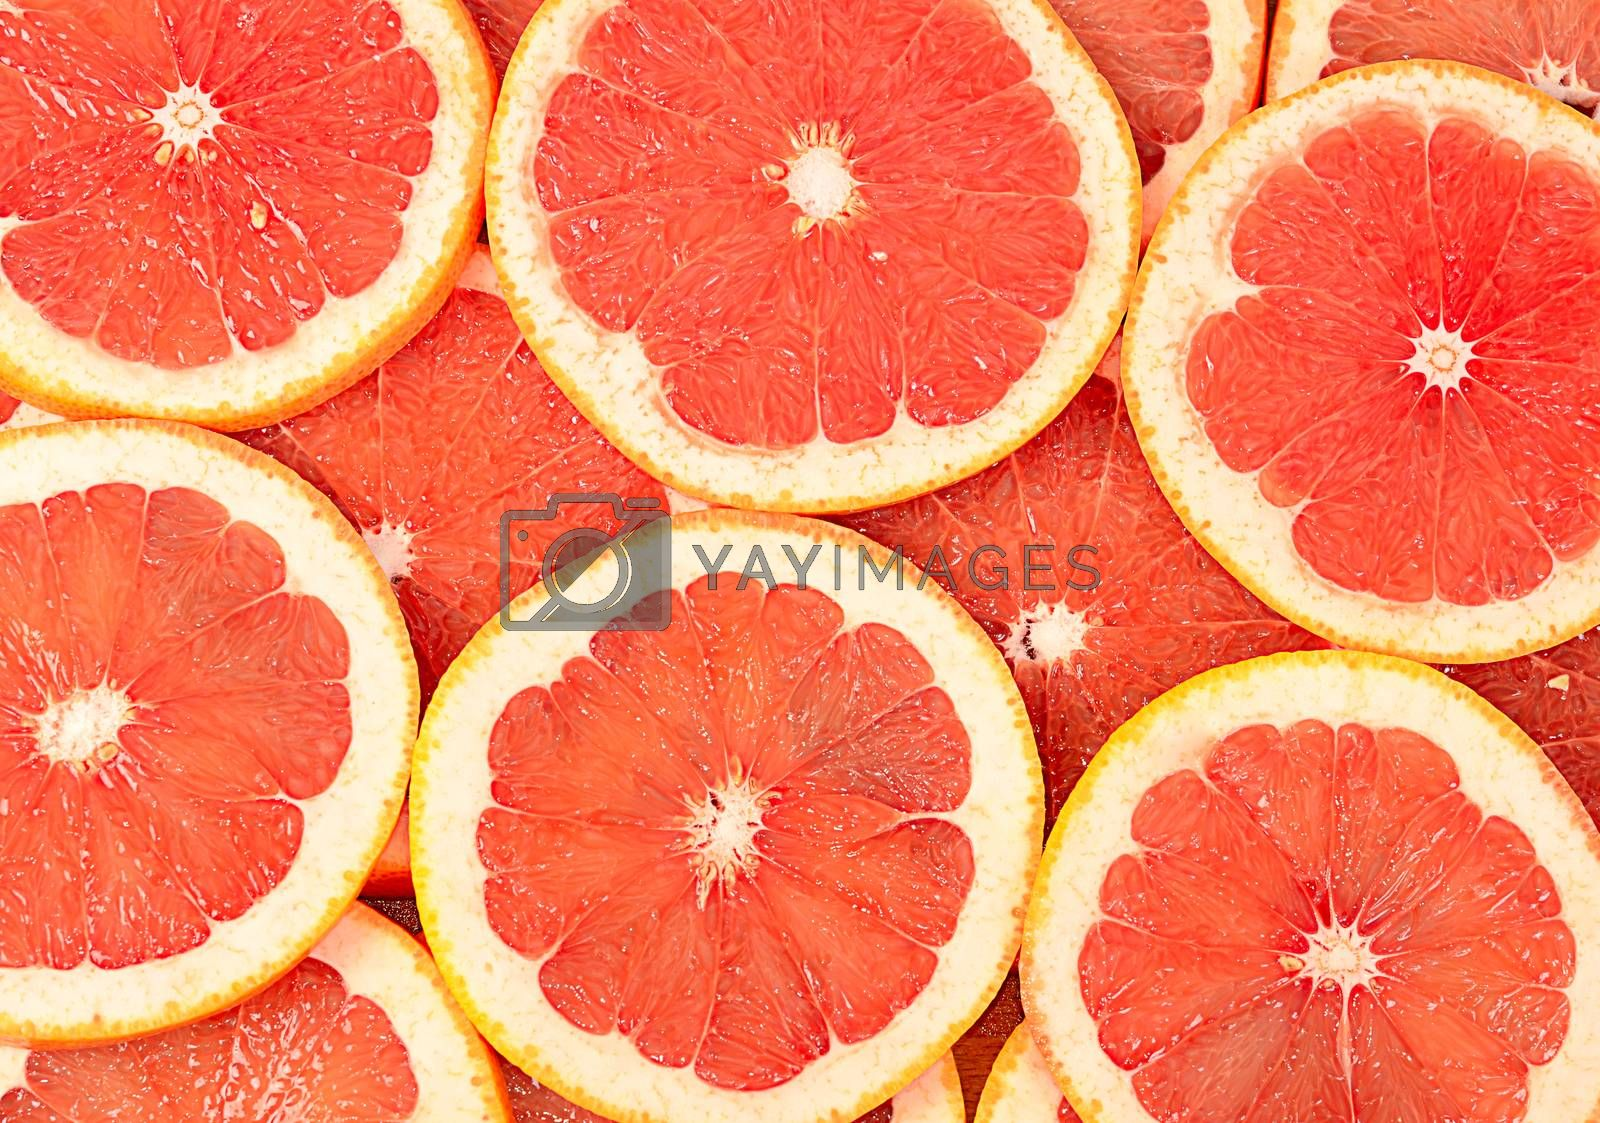 Royalty free image of Fresh grapefruit as a background by SvetaVo